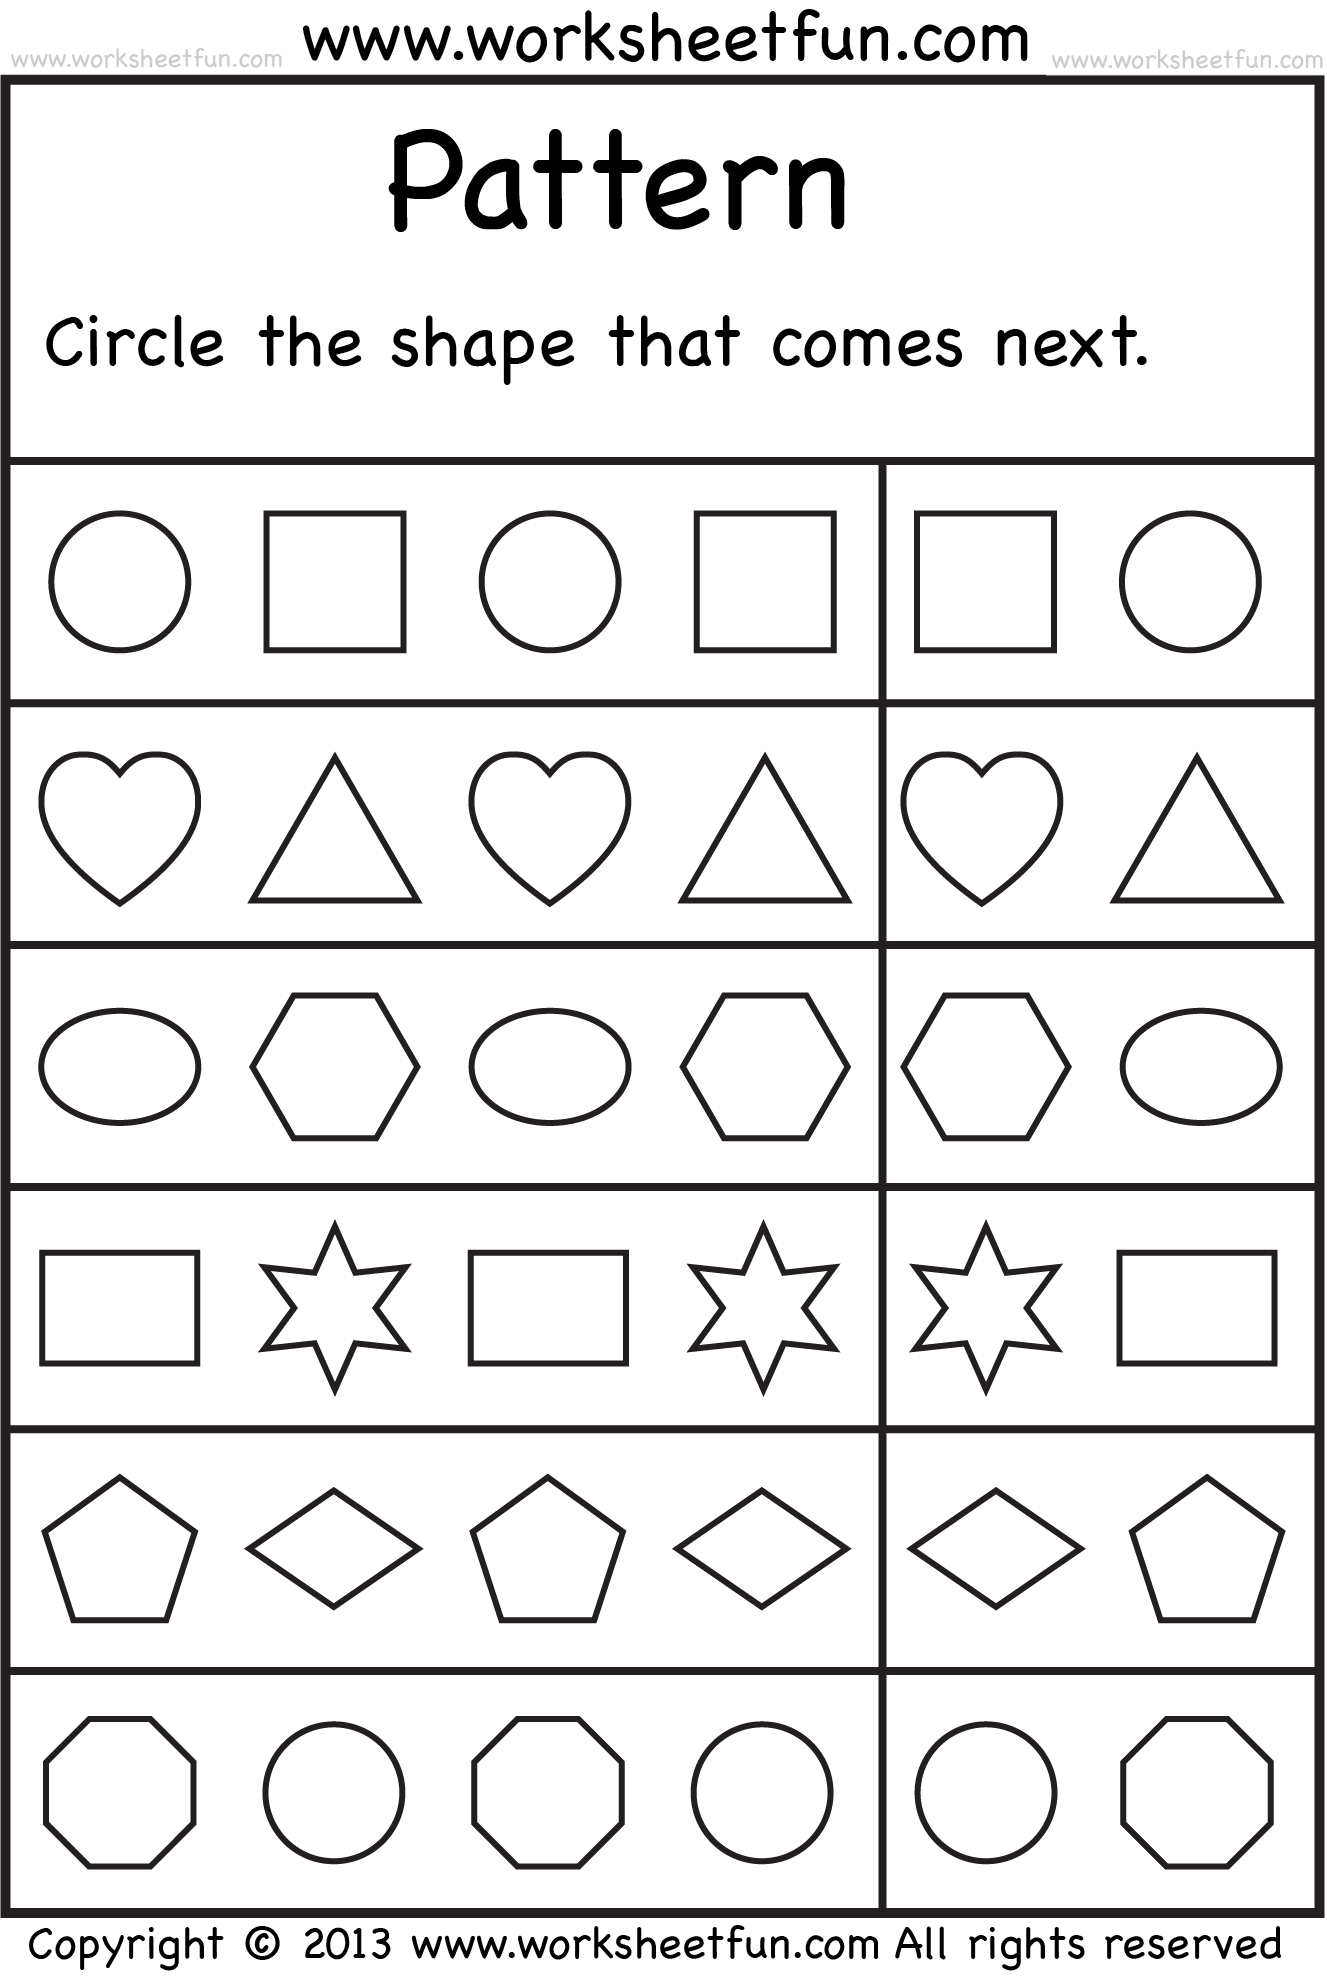 FREE Printable Worksheets U2013 Worksheetfun / FREE Printable .